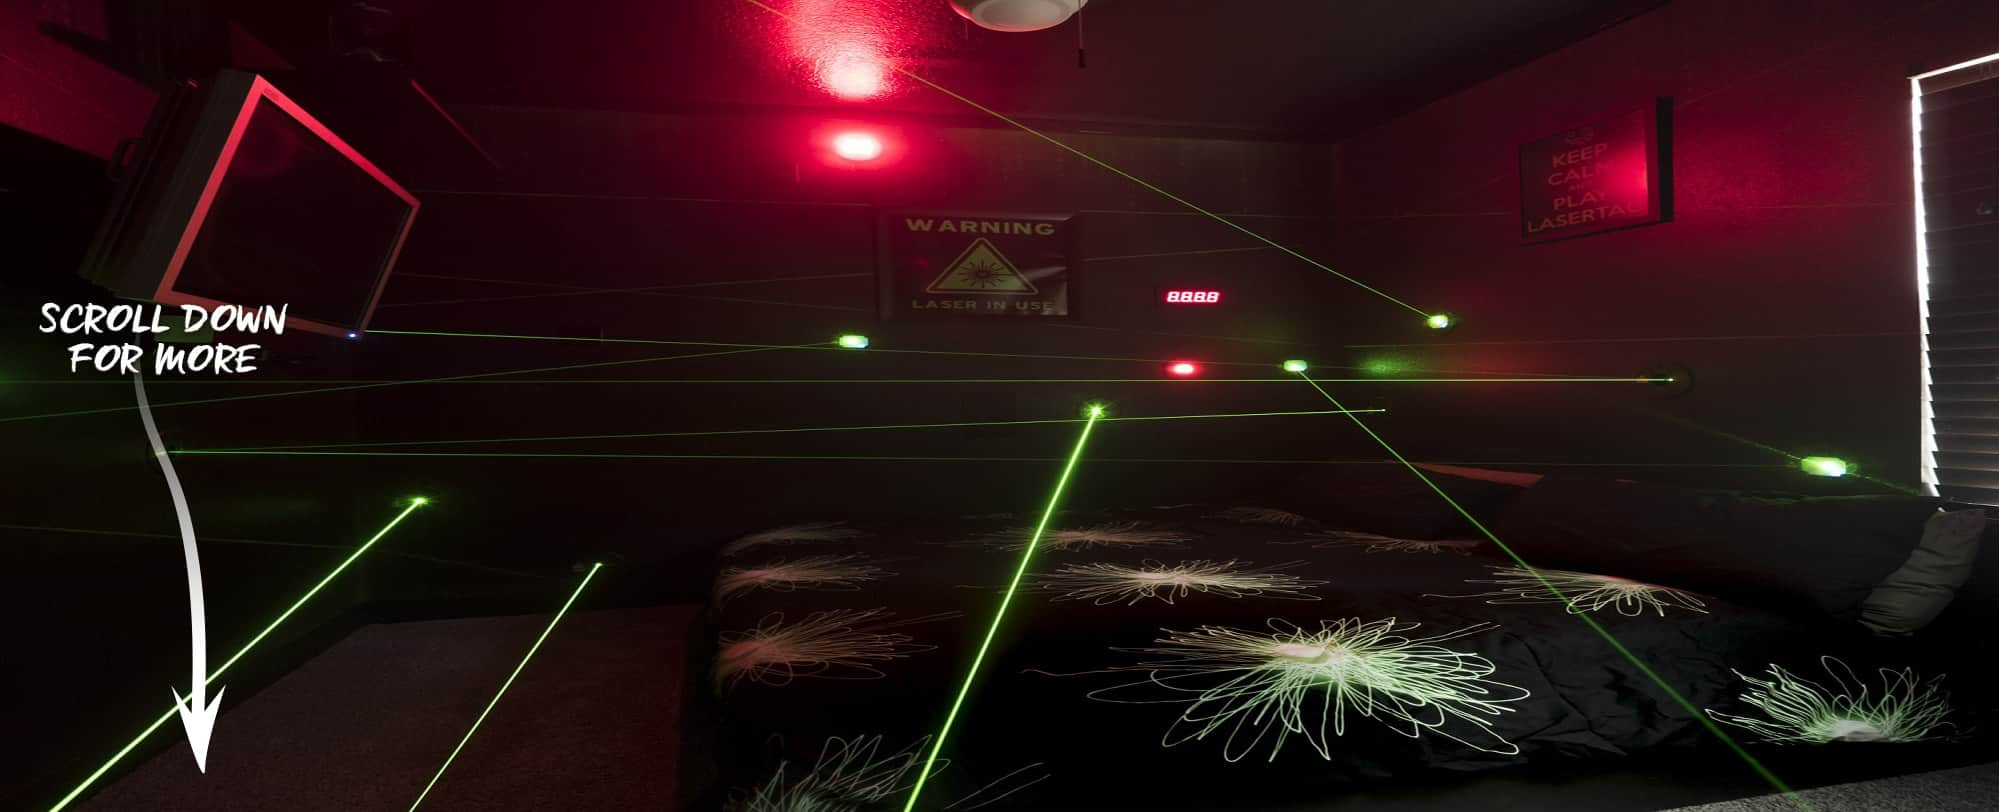 Laser Game Clermont The Great Escape Lakeside Orlando Area Luxury Rentals